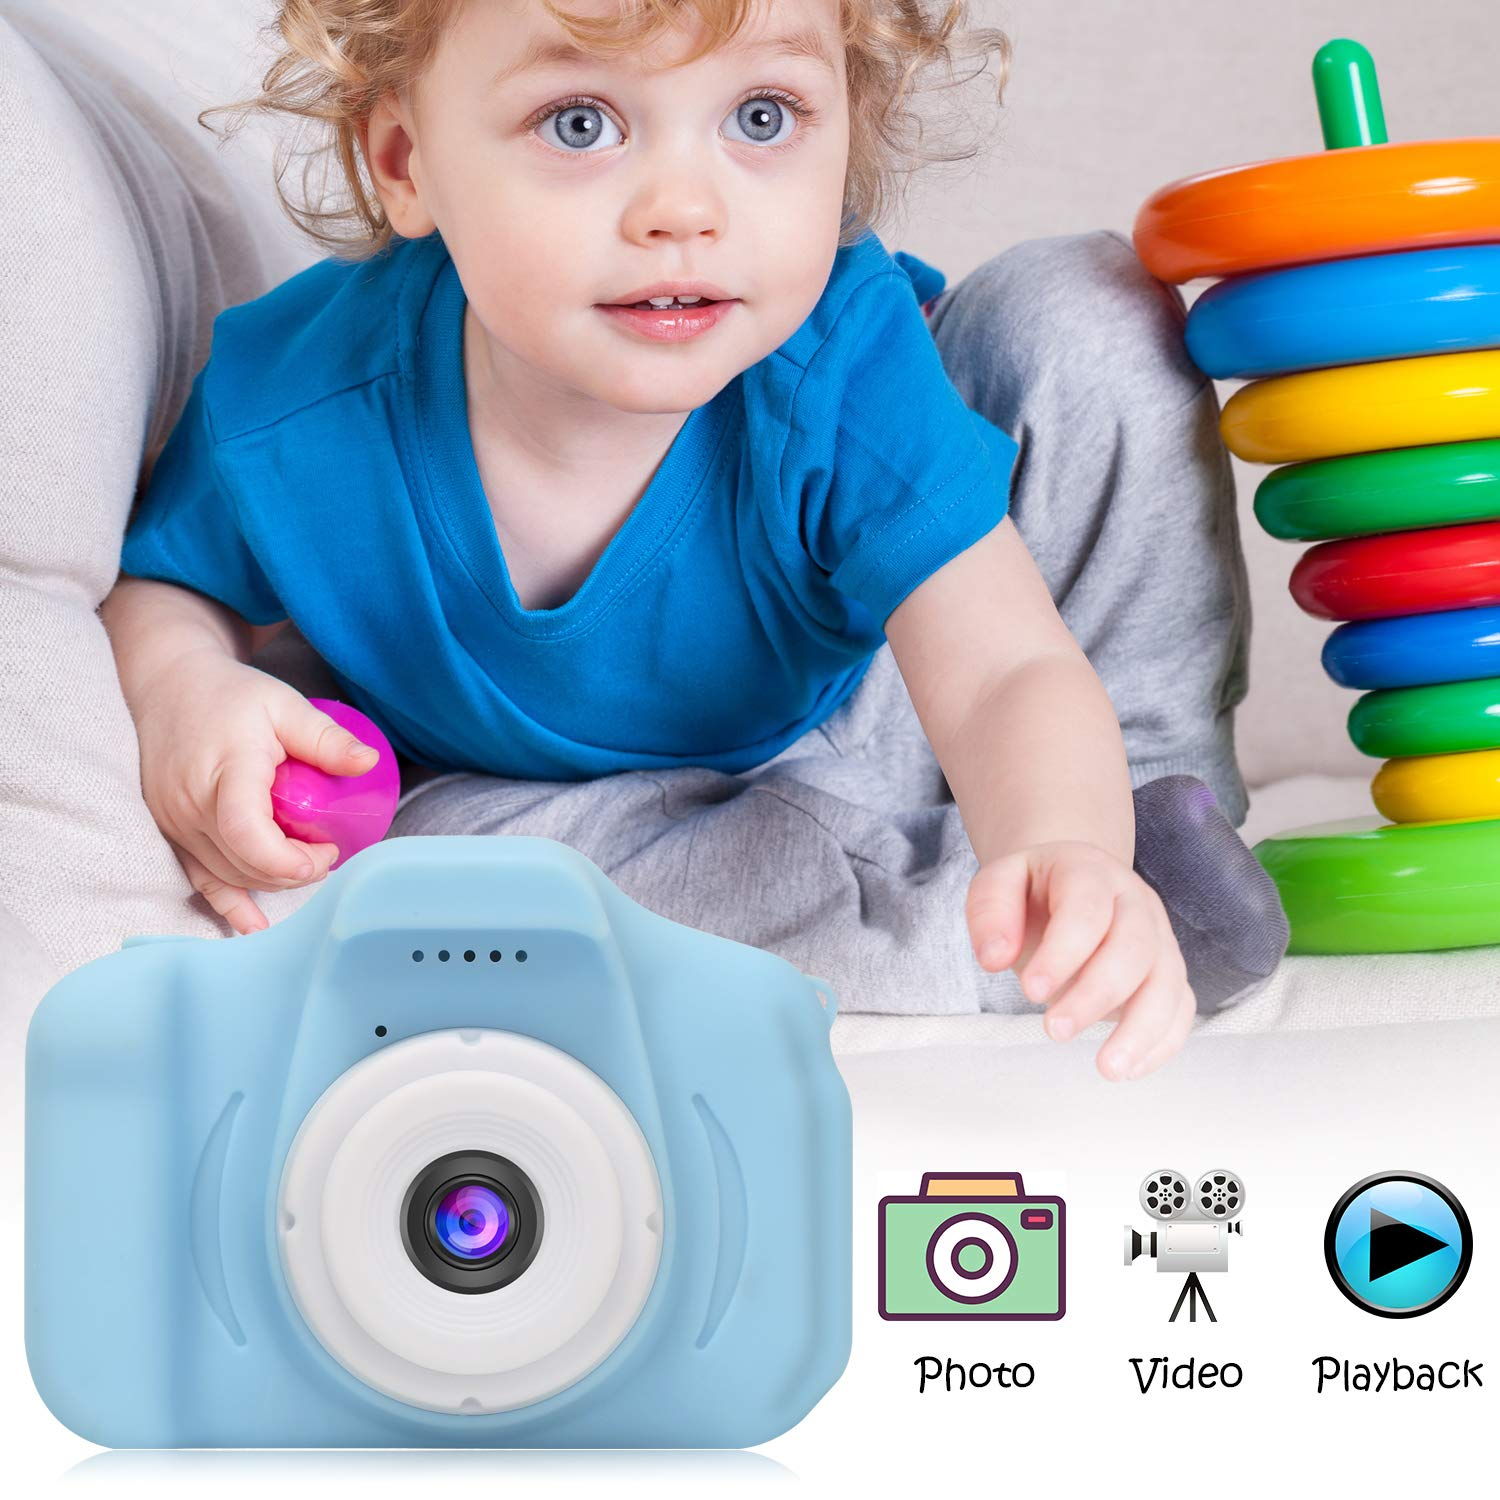 DDGG Kids Digital Camera Toy Camera HD Kids Video Cameras Shockproof Cameras with Soft Silicone Shell Gift for 4-10 Years Old Girls Boys Party Outdoor Play (16G SD Card Included) by DDGG (Image #6)